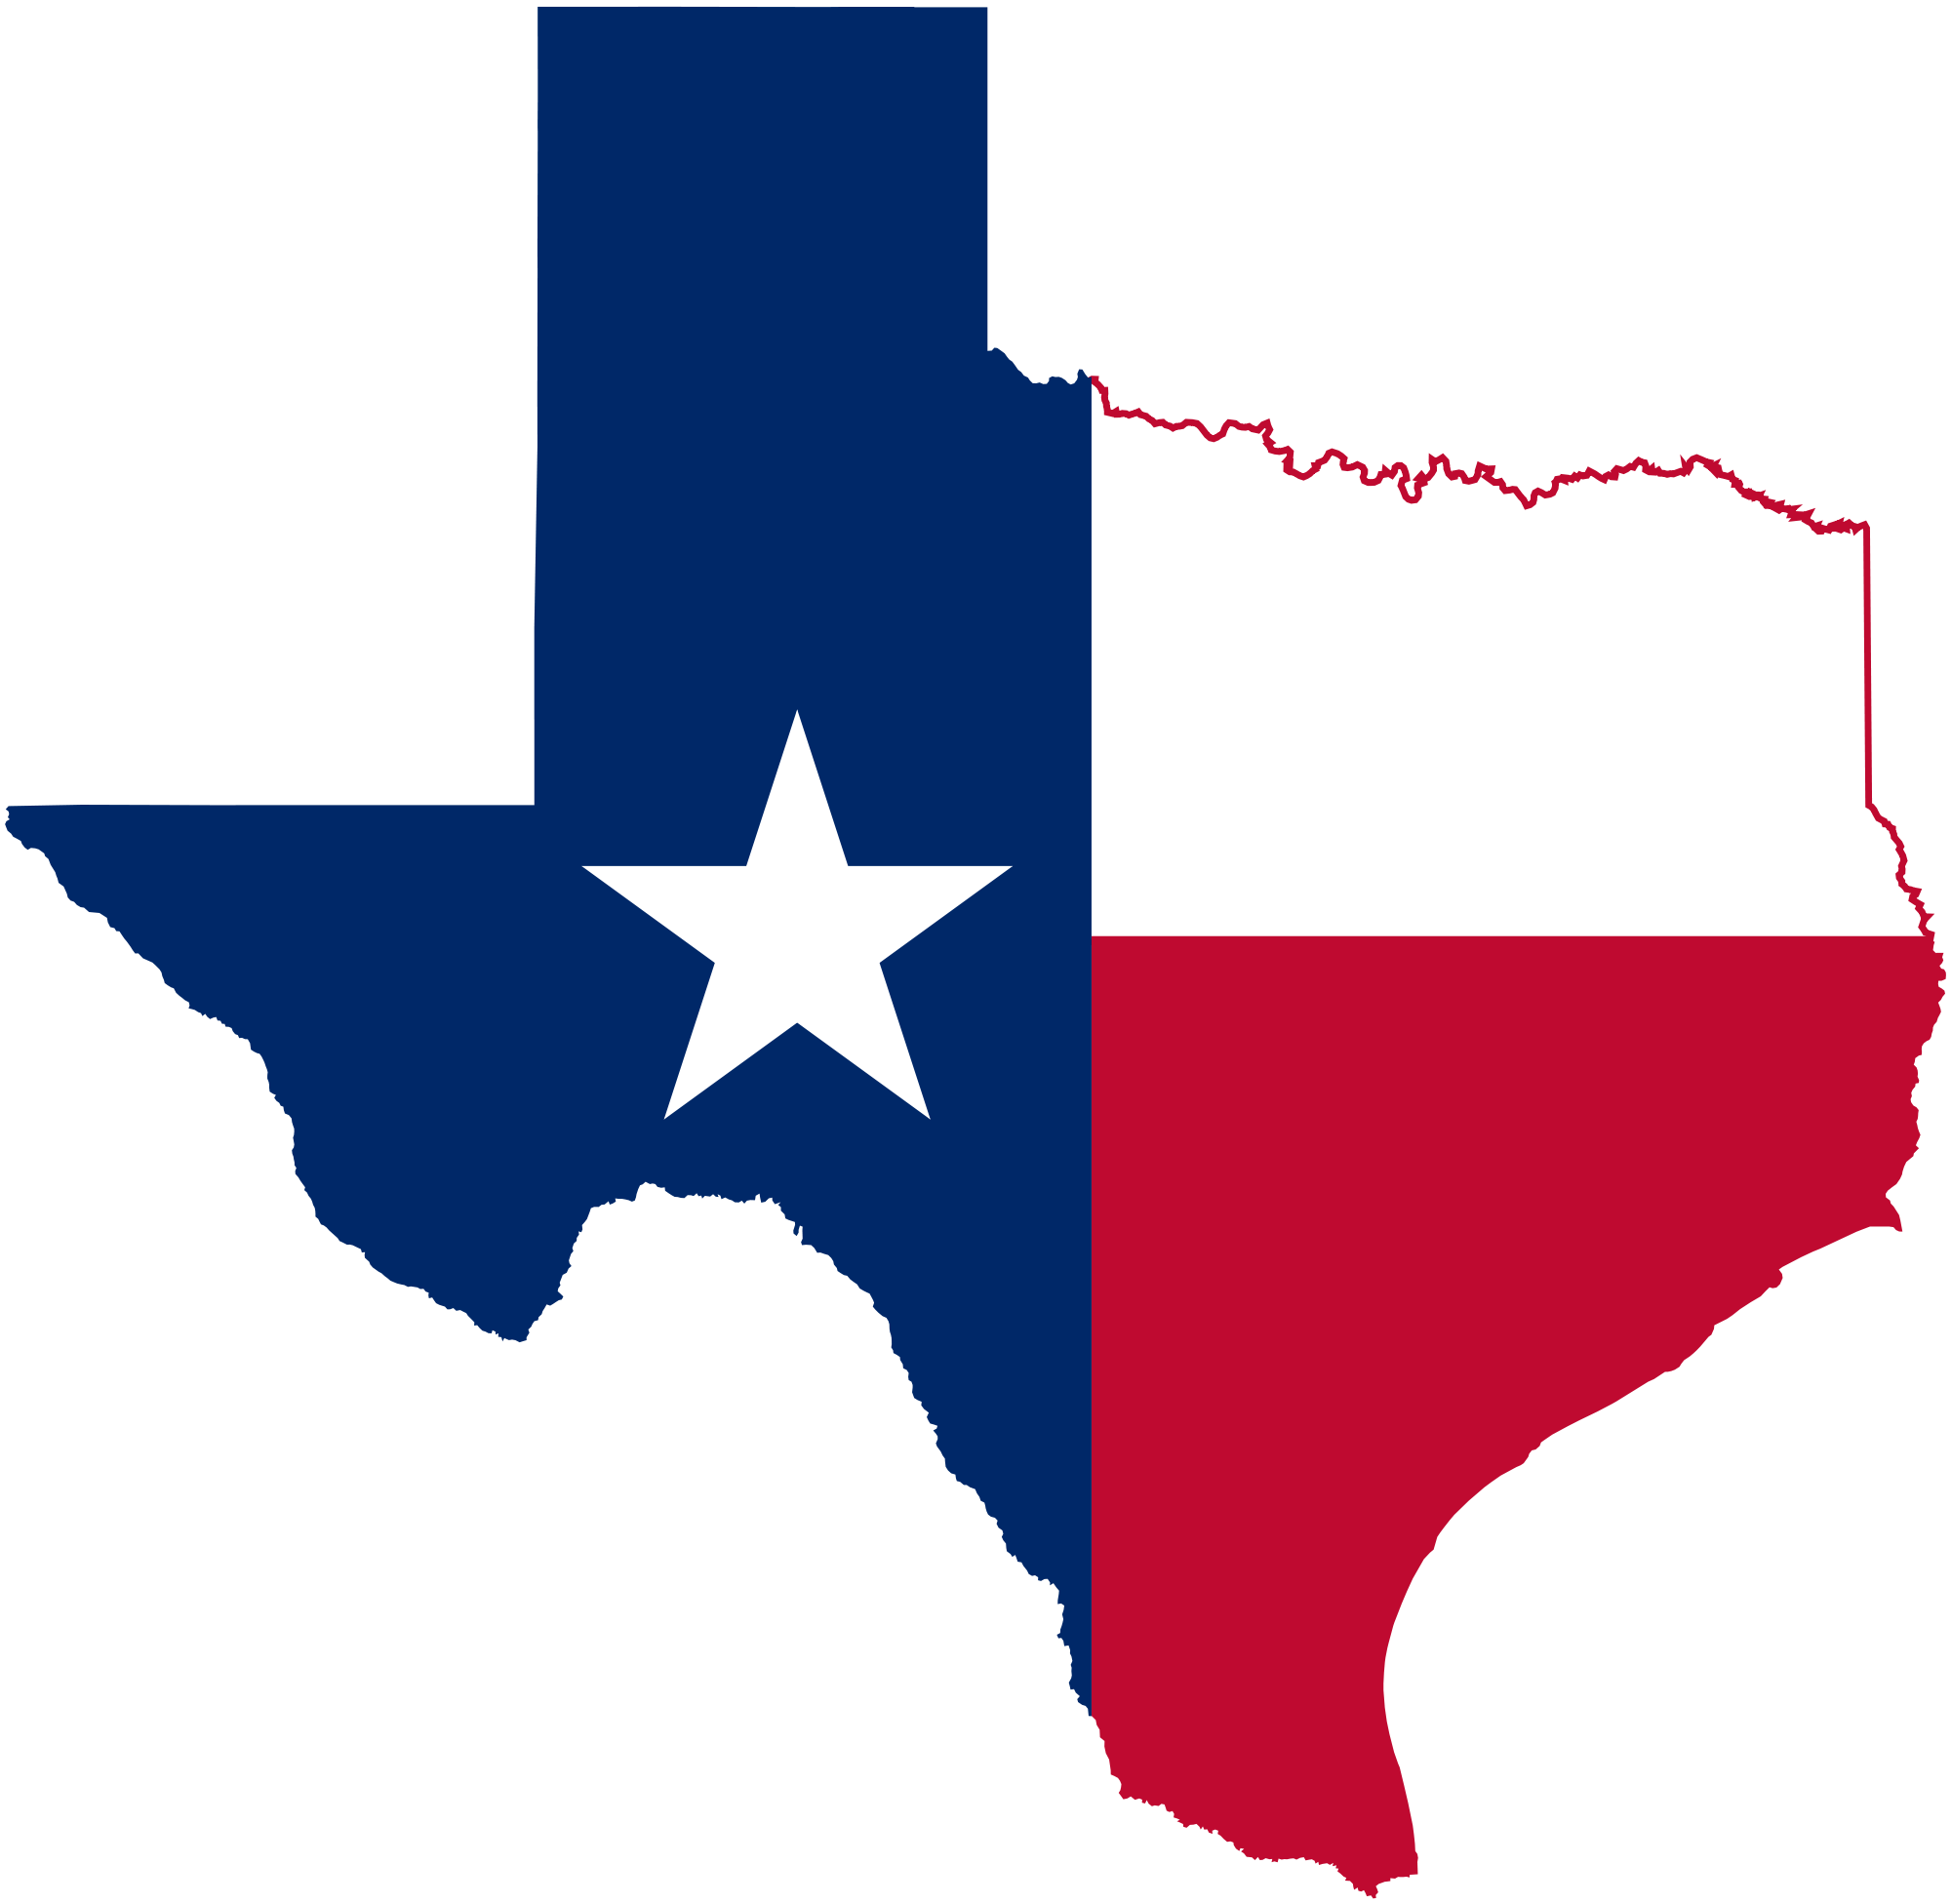 File:Texas flag map.svg - Wikimedia Commons